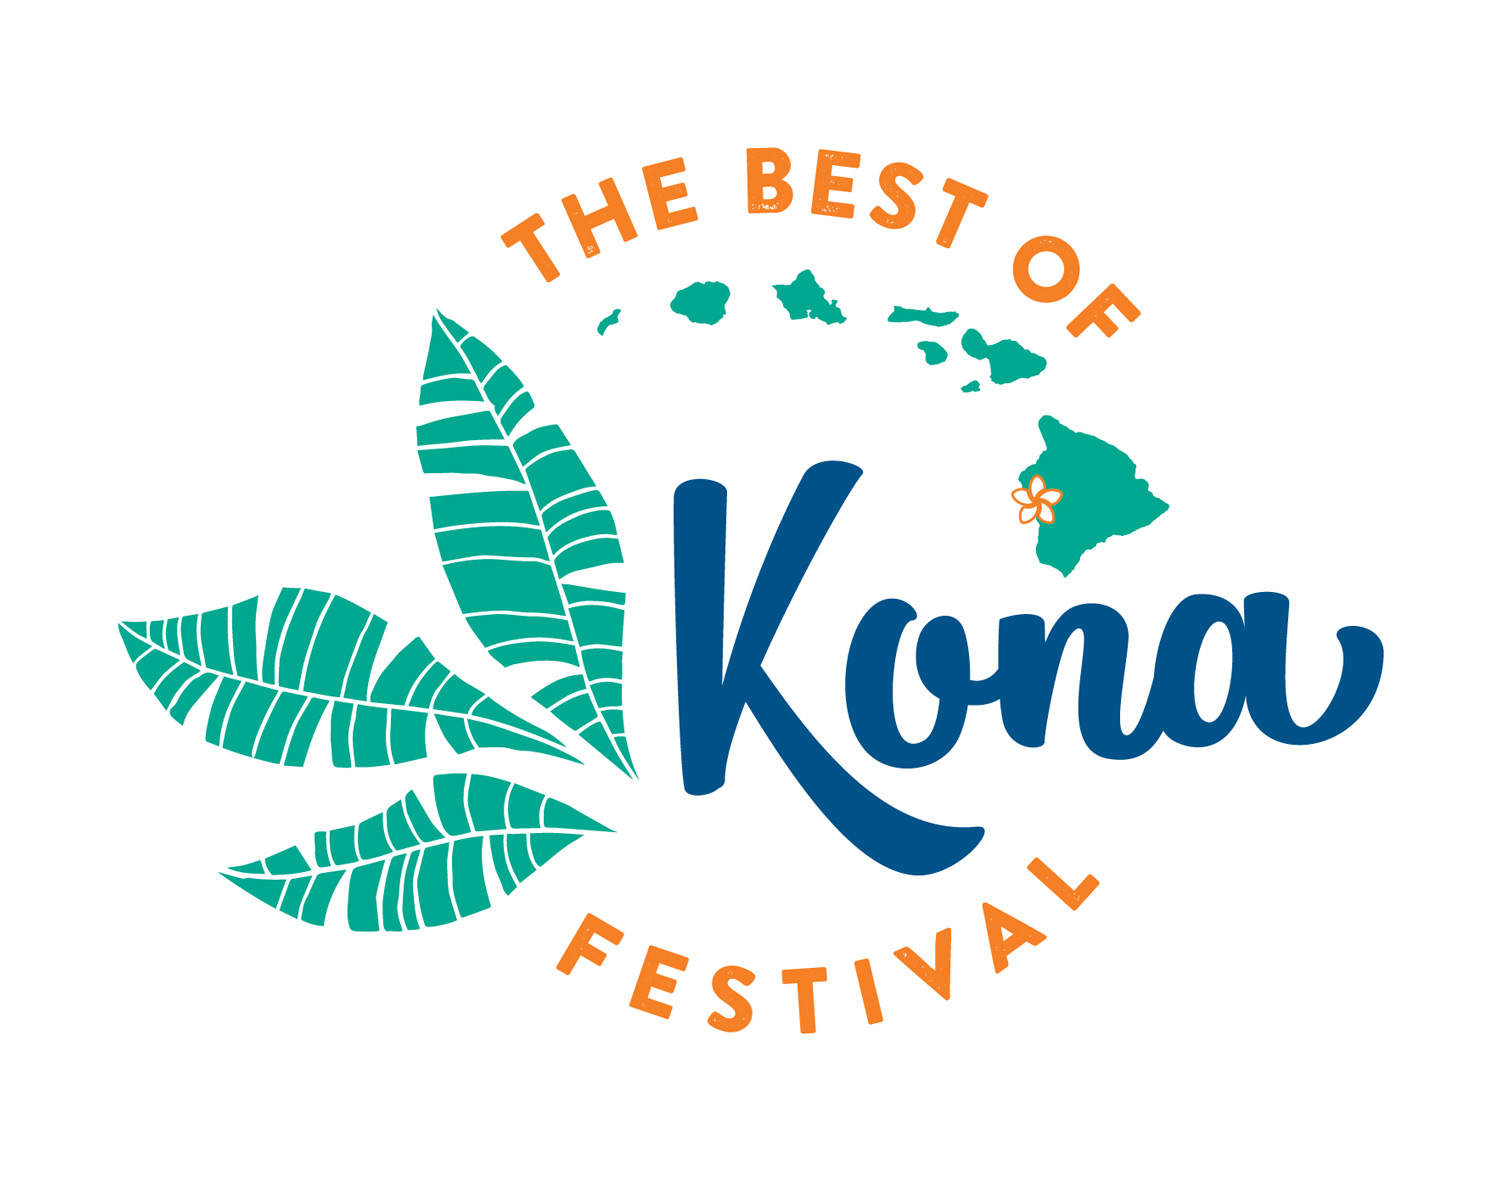 Best of Kona, LLC image